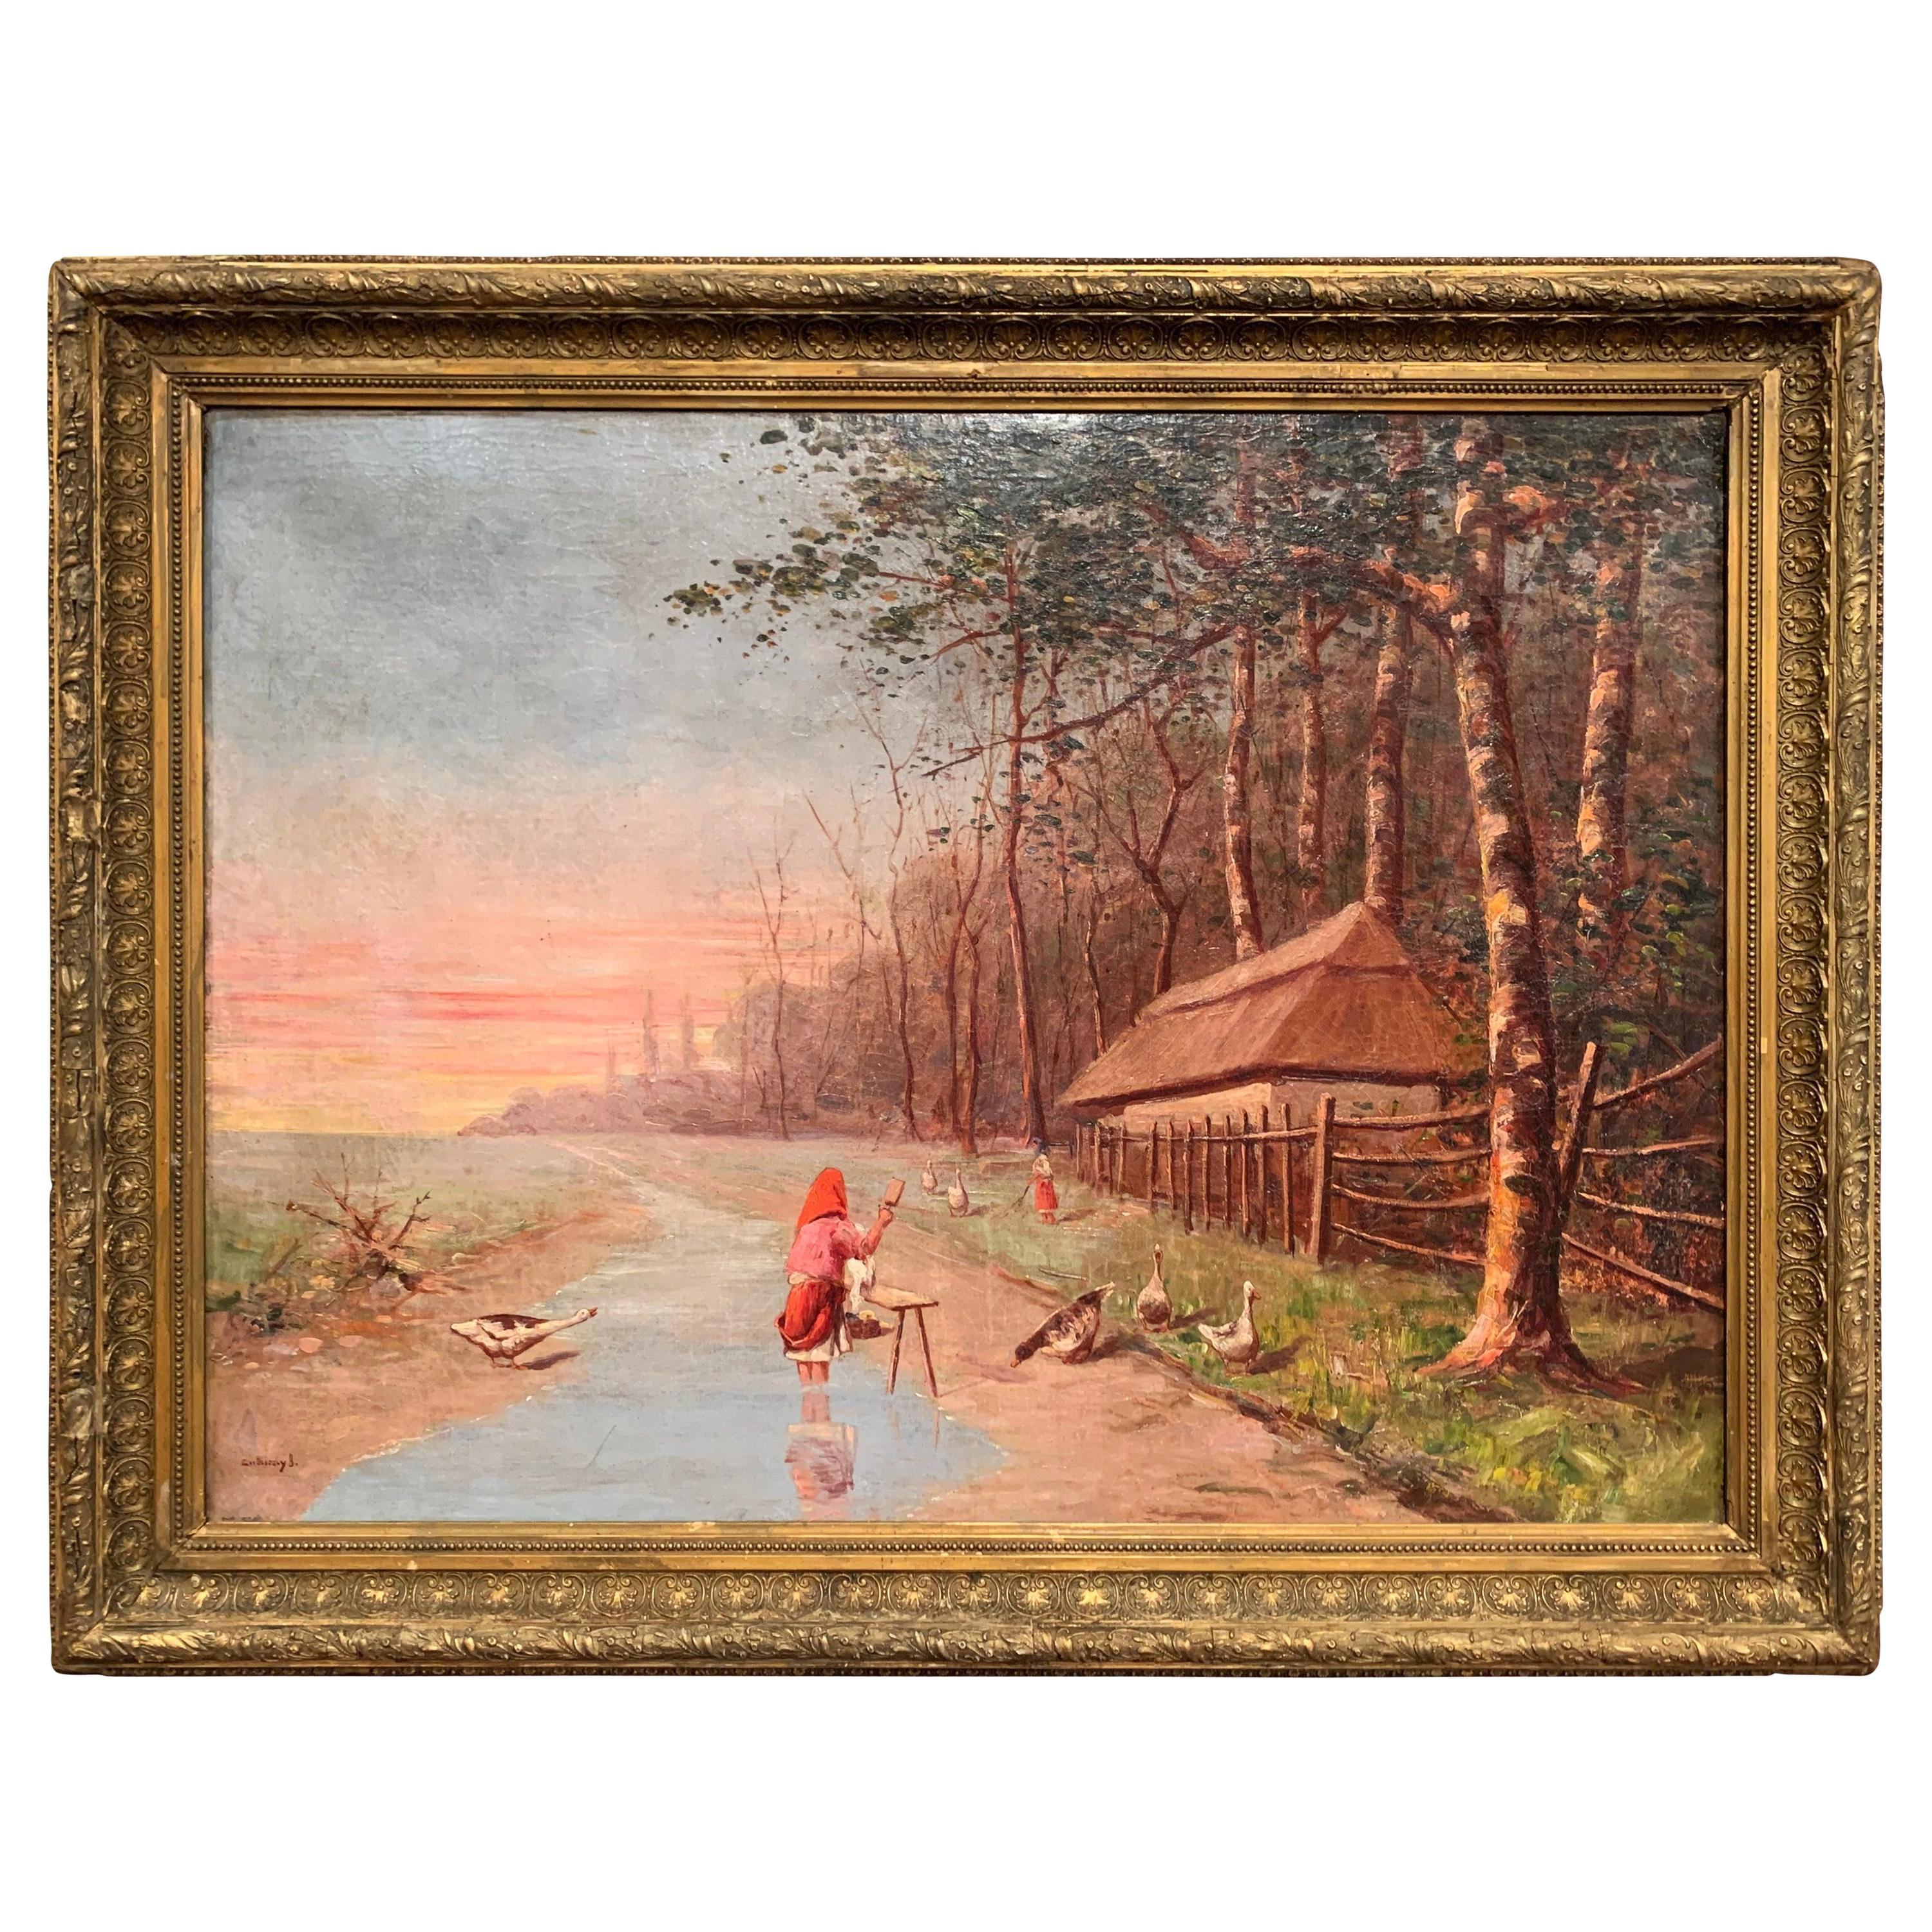 19th Century Hungarian Oil on Canvas Painting in Gilt Frame Signed Guniczky